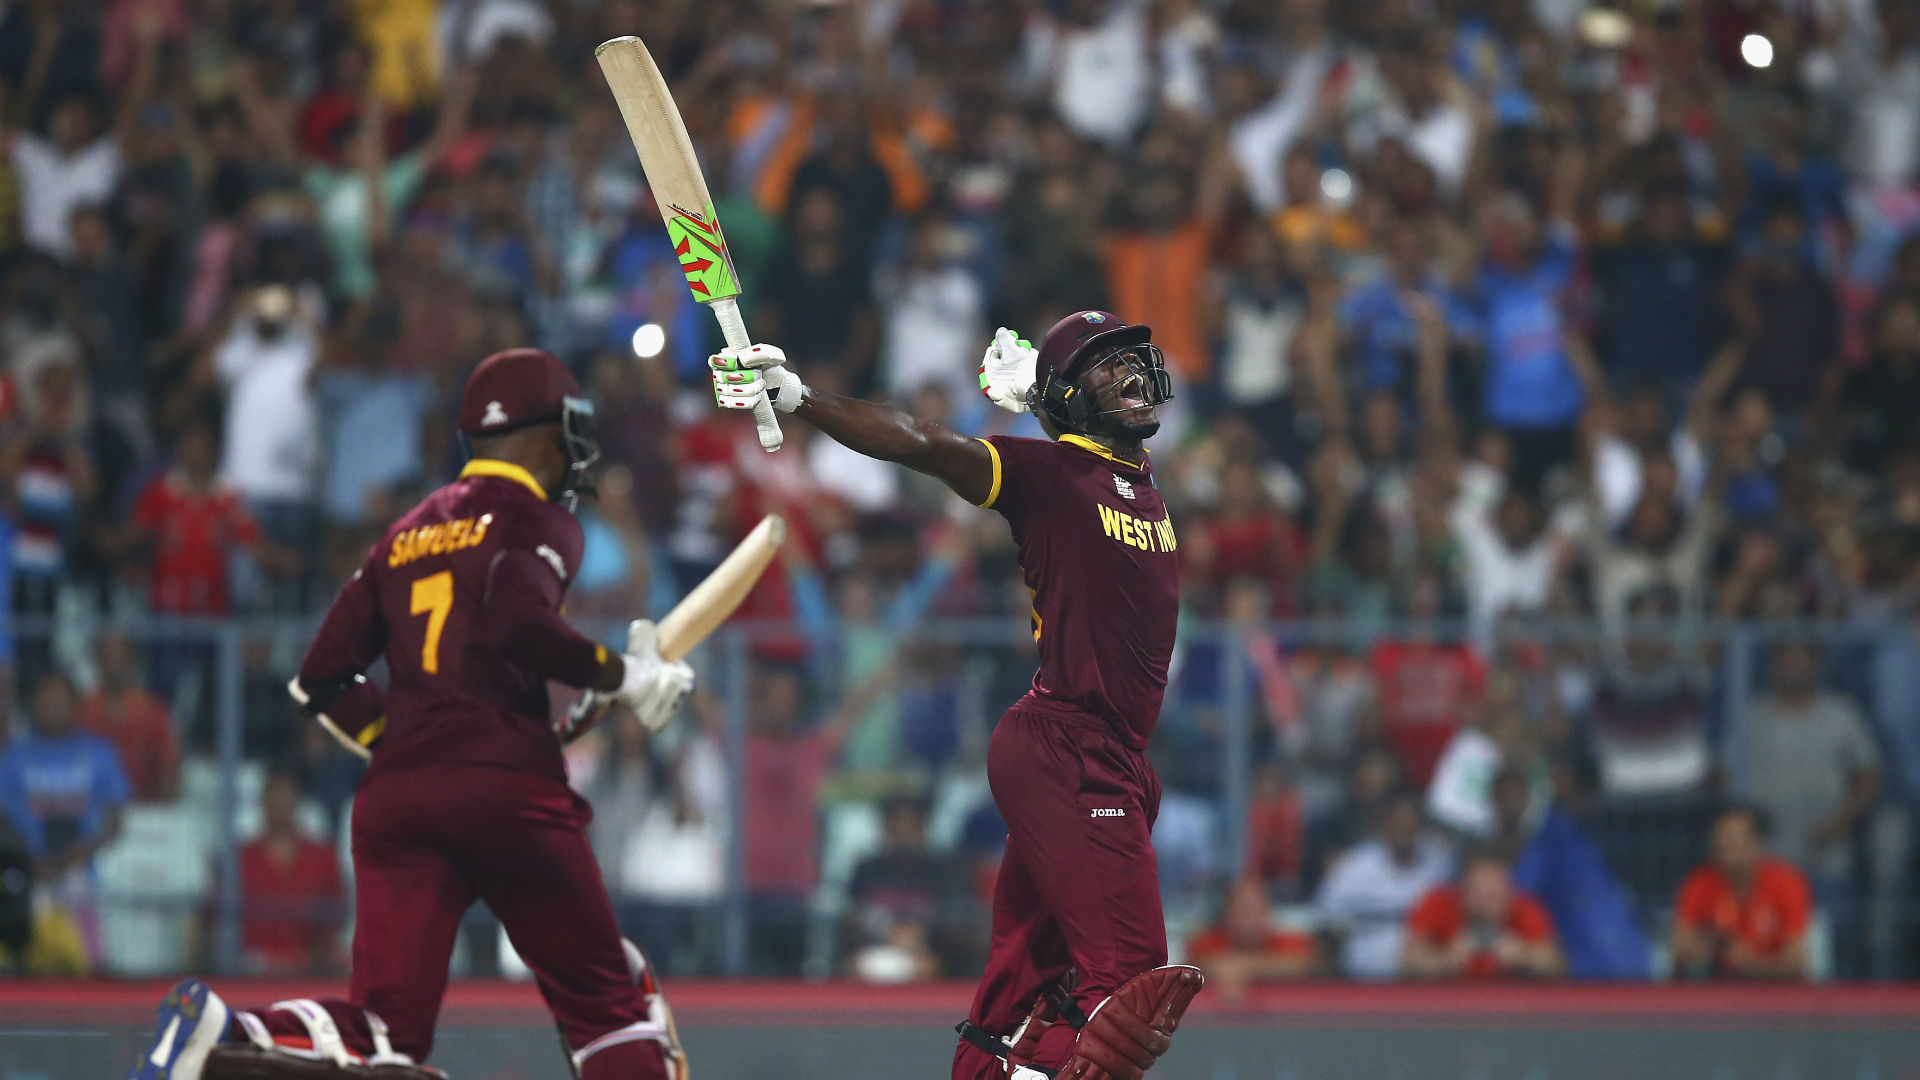 On this day in sport: Brathwaite leaves Stokes shattered, Popovich's sharp exit, Messi milestone